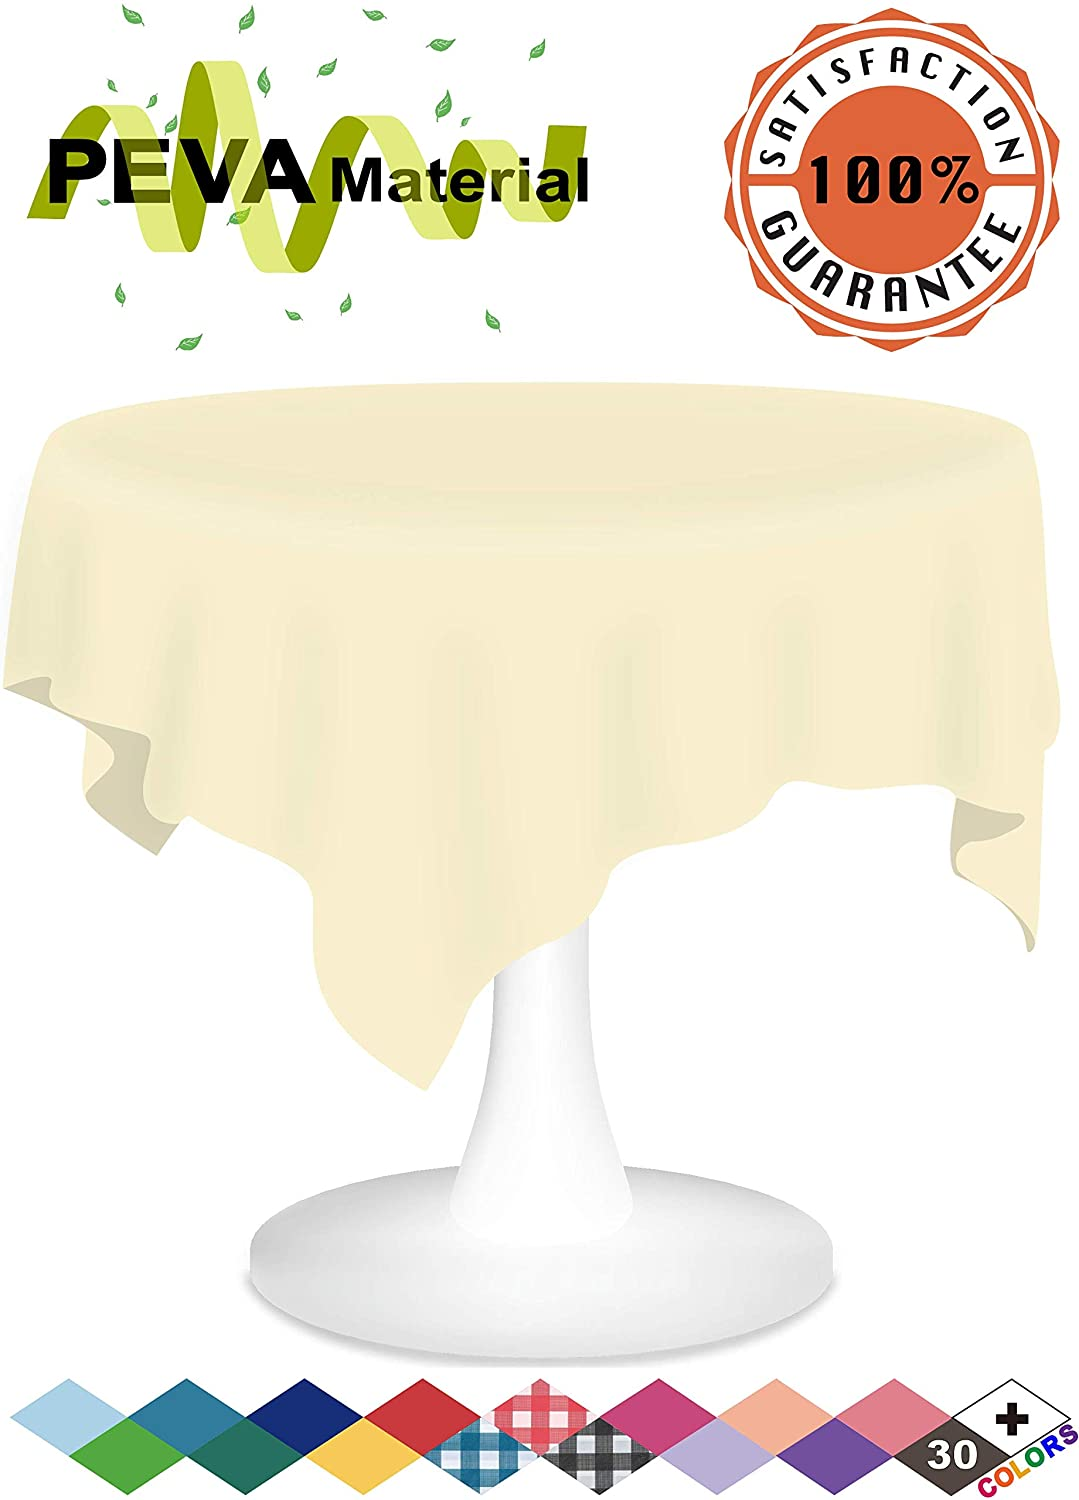 Ivory Plastic Tablecloths 12 Pack Disposable Table Covers 84 Inch Circle Shower Party Tablecovers PEVA Vinyl Table Cloths for Round Tables up to 6 ft and Picnic BBQ Birthday Wedding Catering Banquet